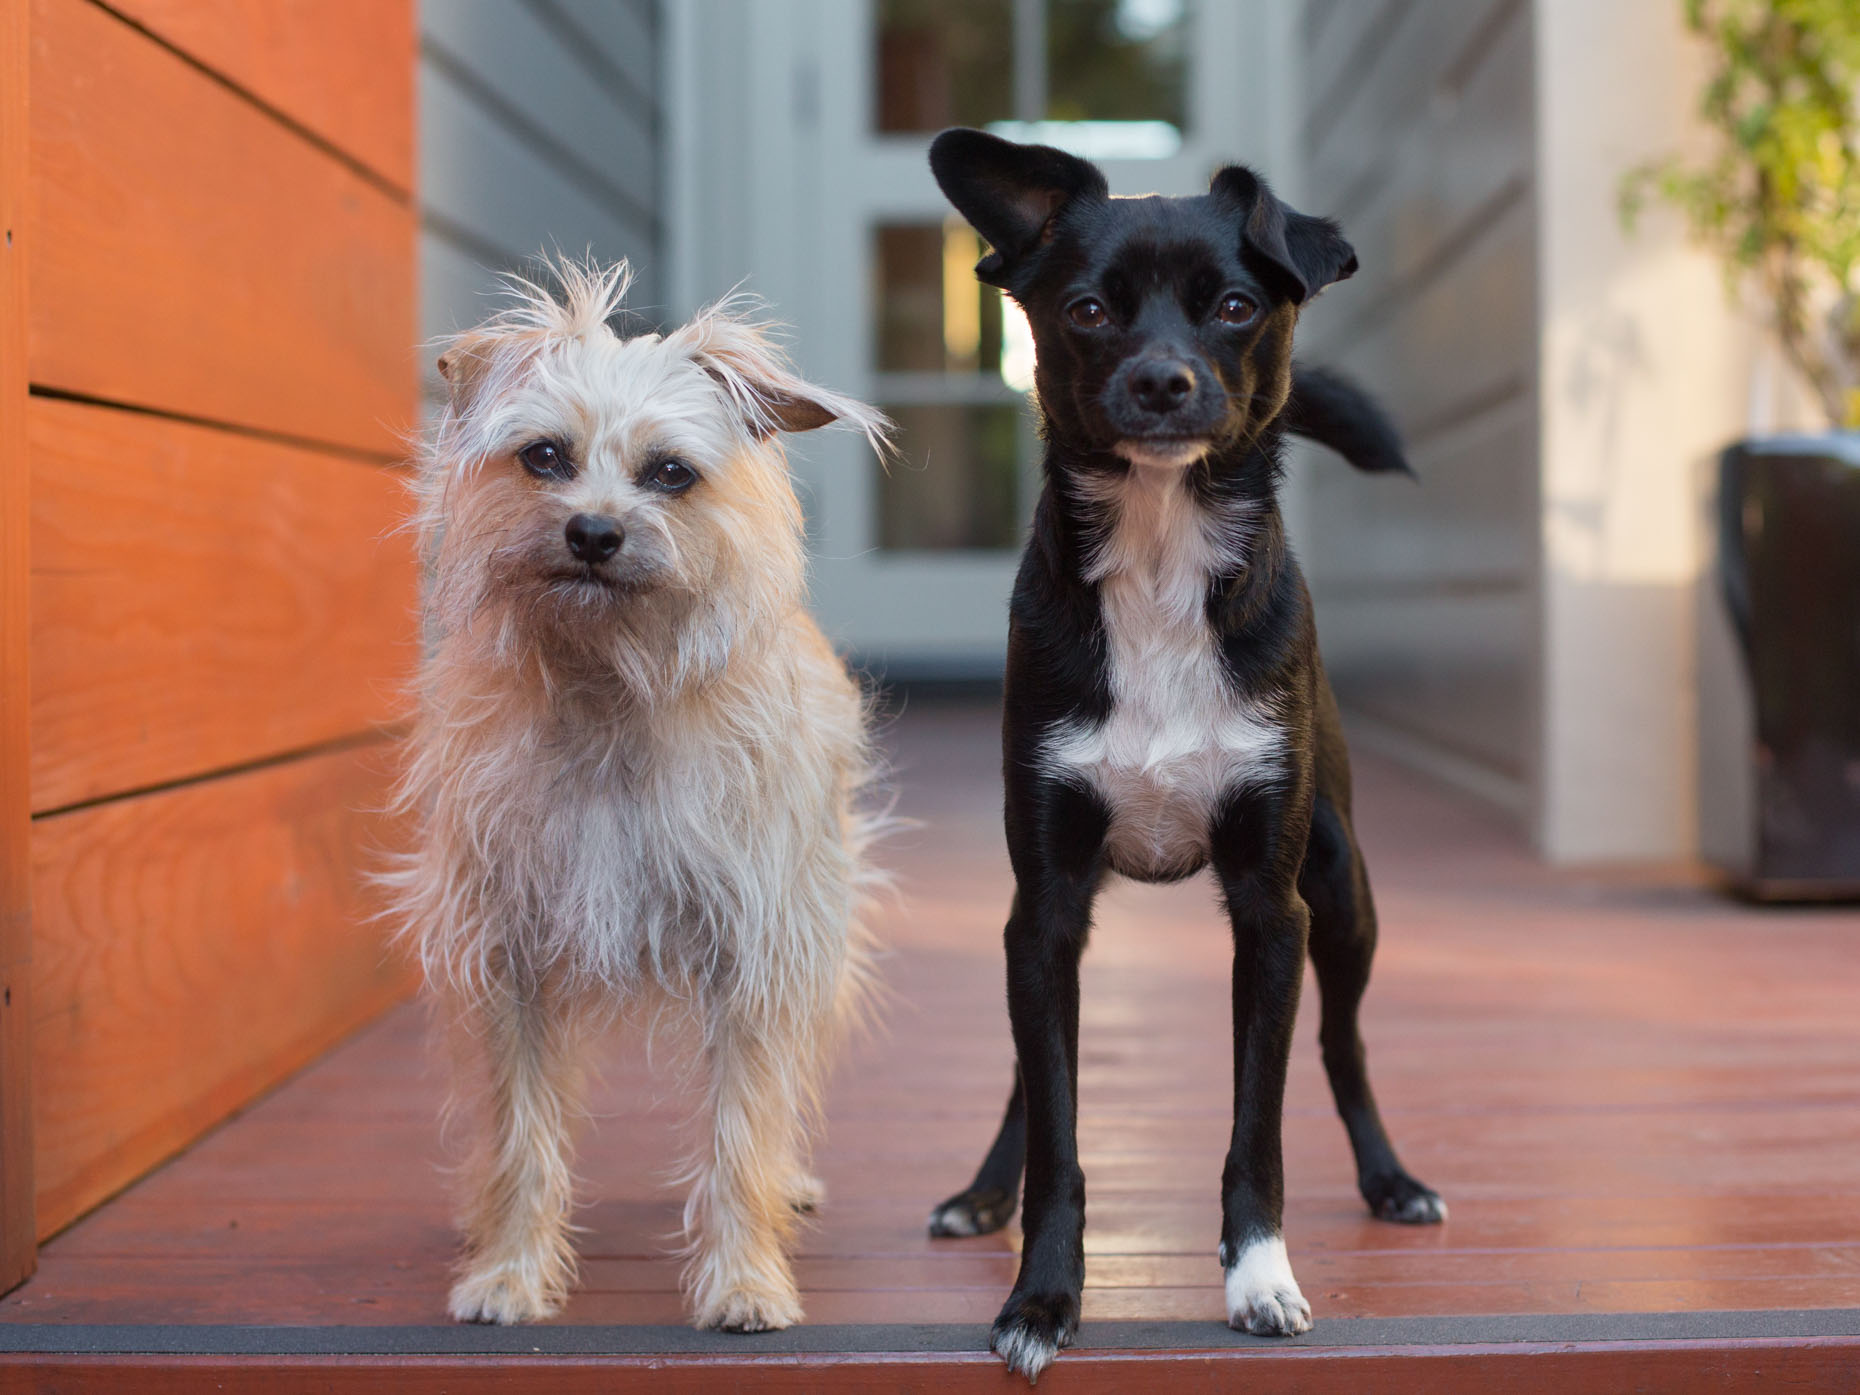 Pet Photography  |  Two Mutt Dogs by Mark Rogers